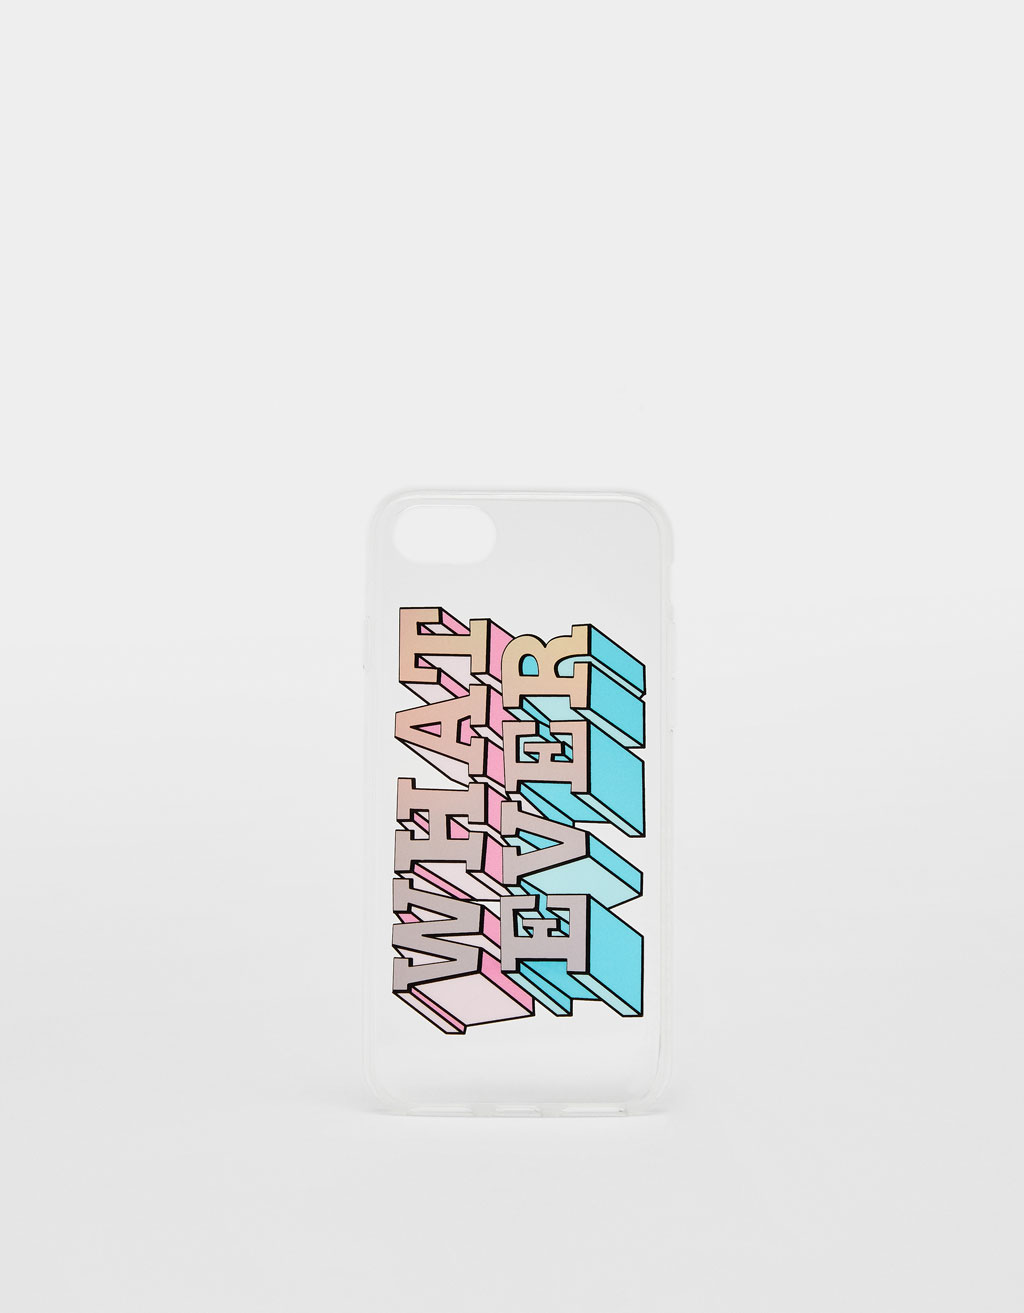 Hoesje What ever iPhone 6 / 6S / 7 / 8